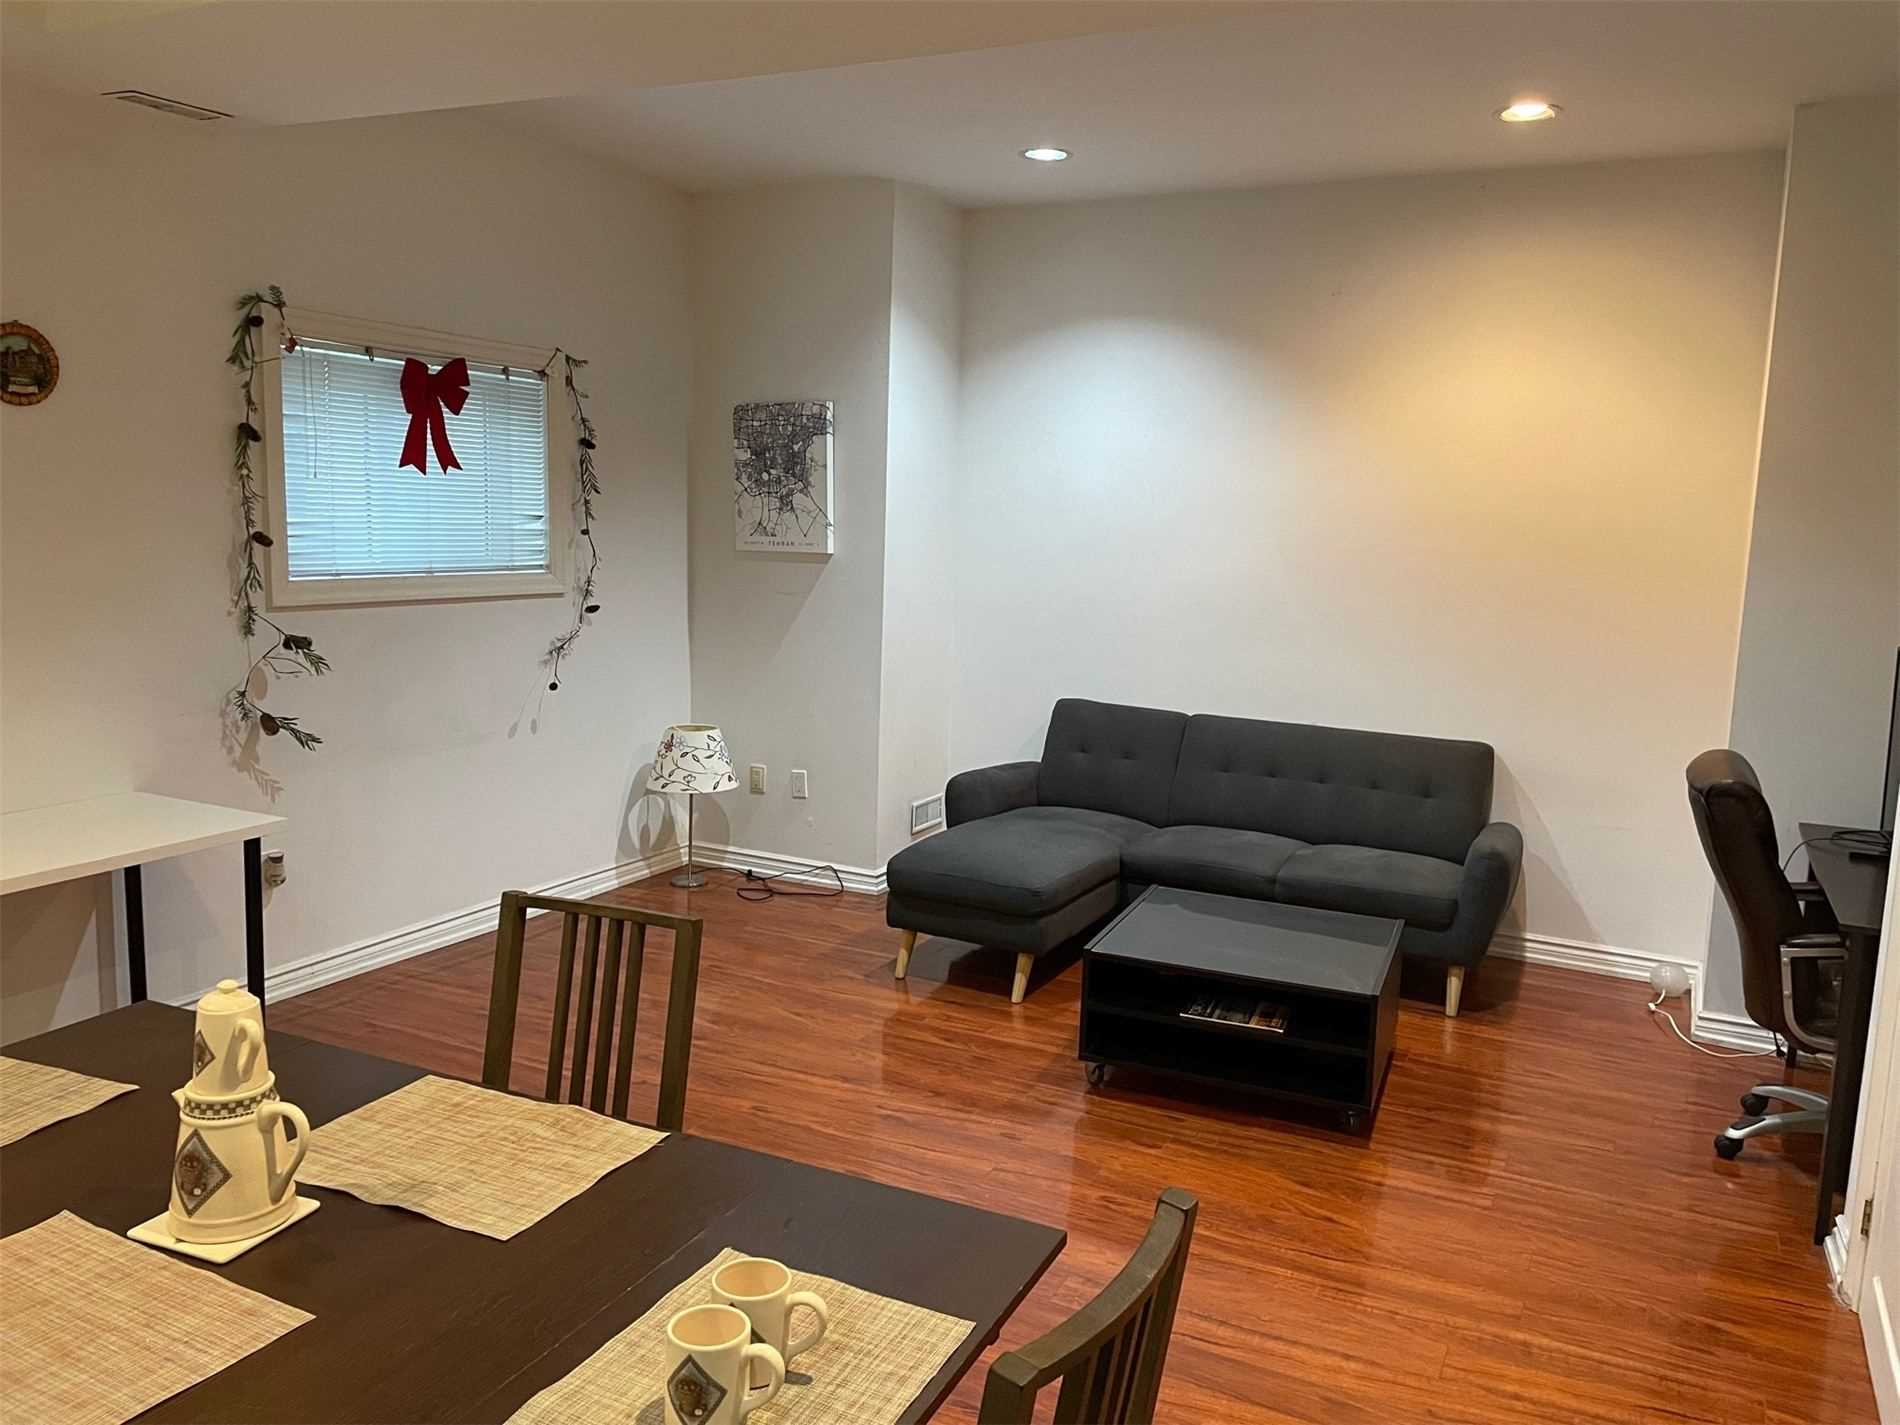 Image 3 of 10 showing inside of 1 Bedroom Detached 2-Storey for Lease at 40 Madawaska Ave, Toronto M2M2P9